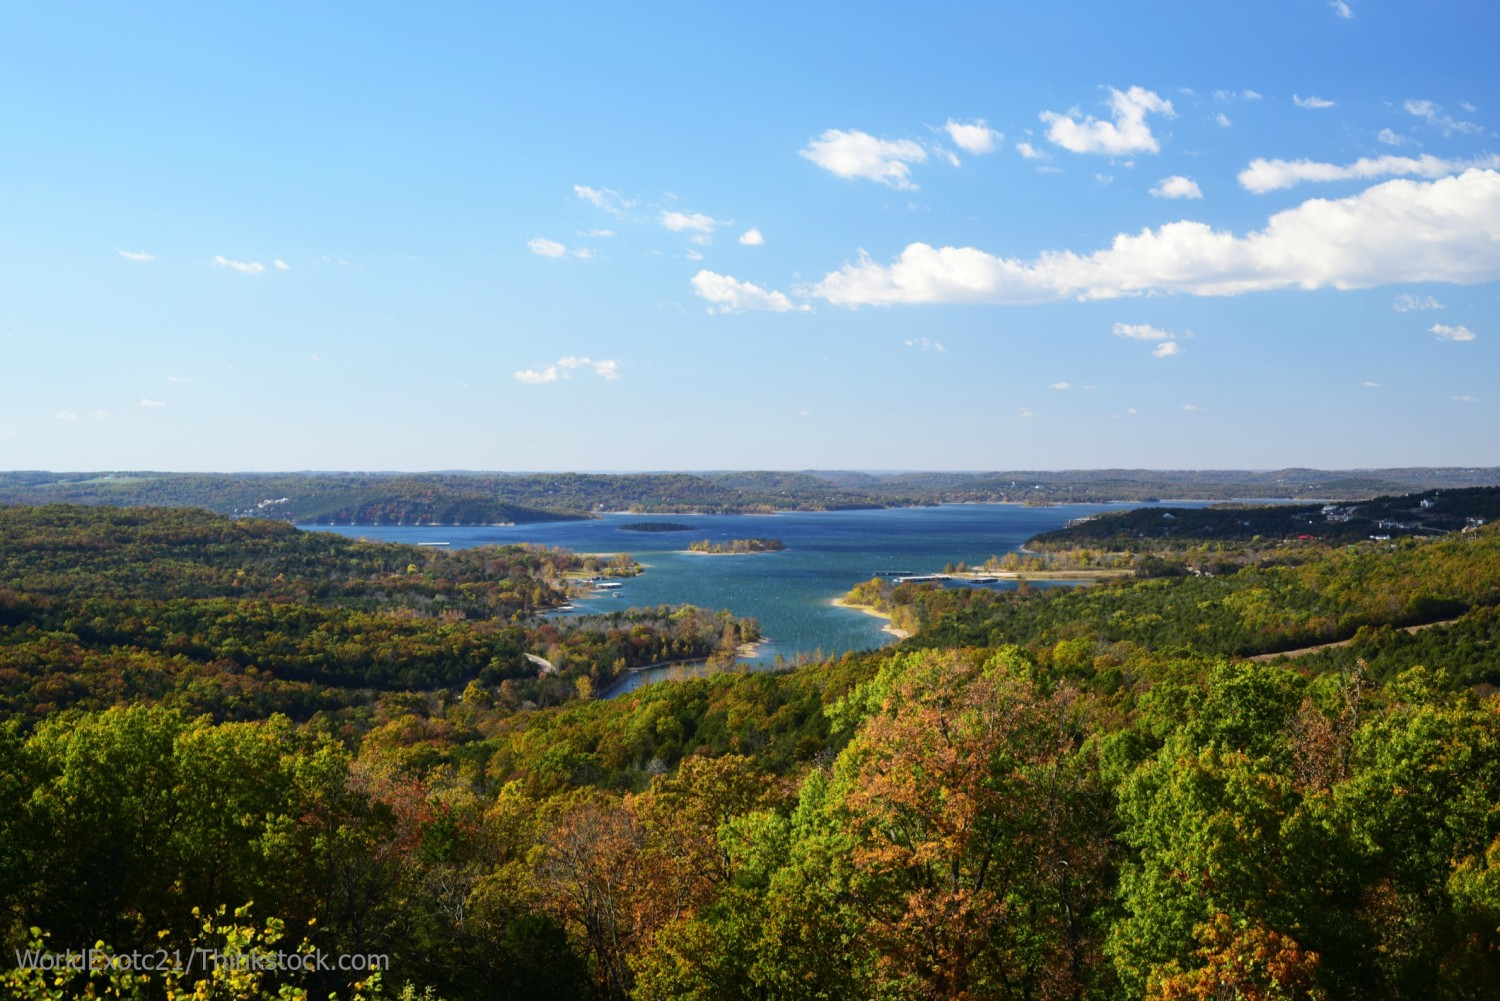 The Ideal Weekend at Table Rock Lake